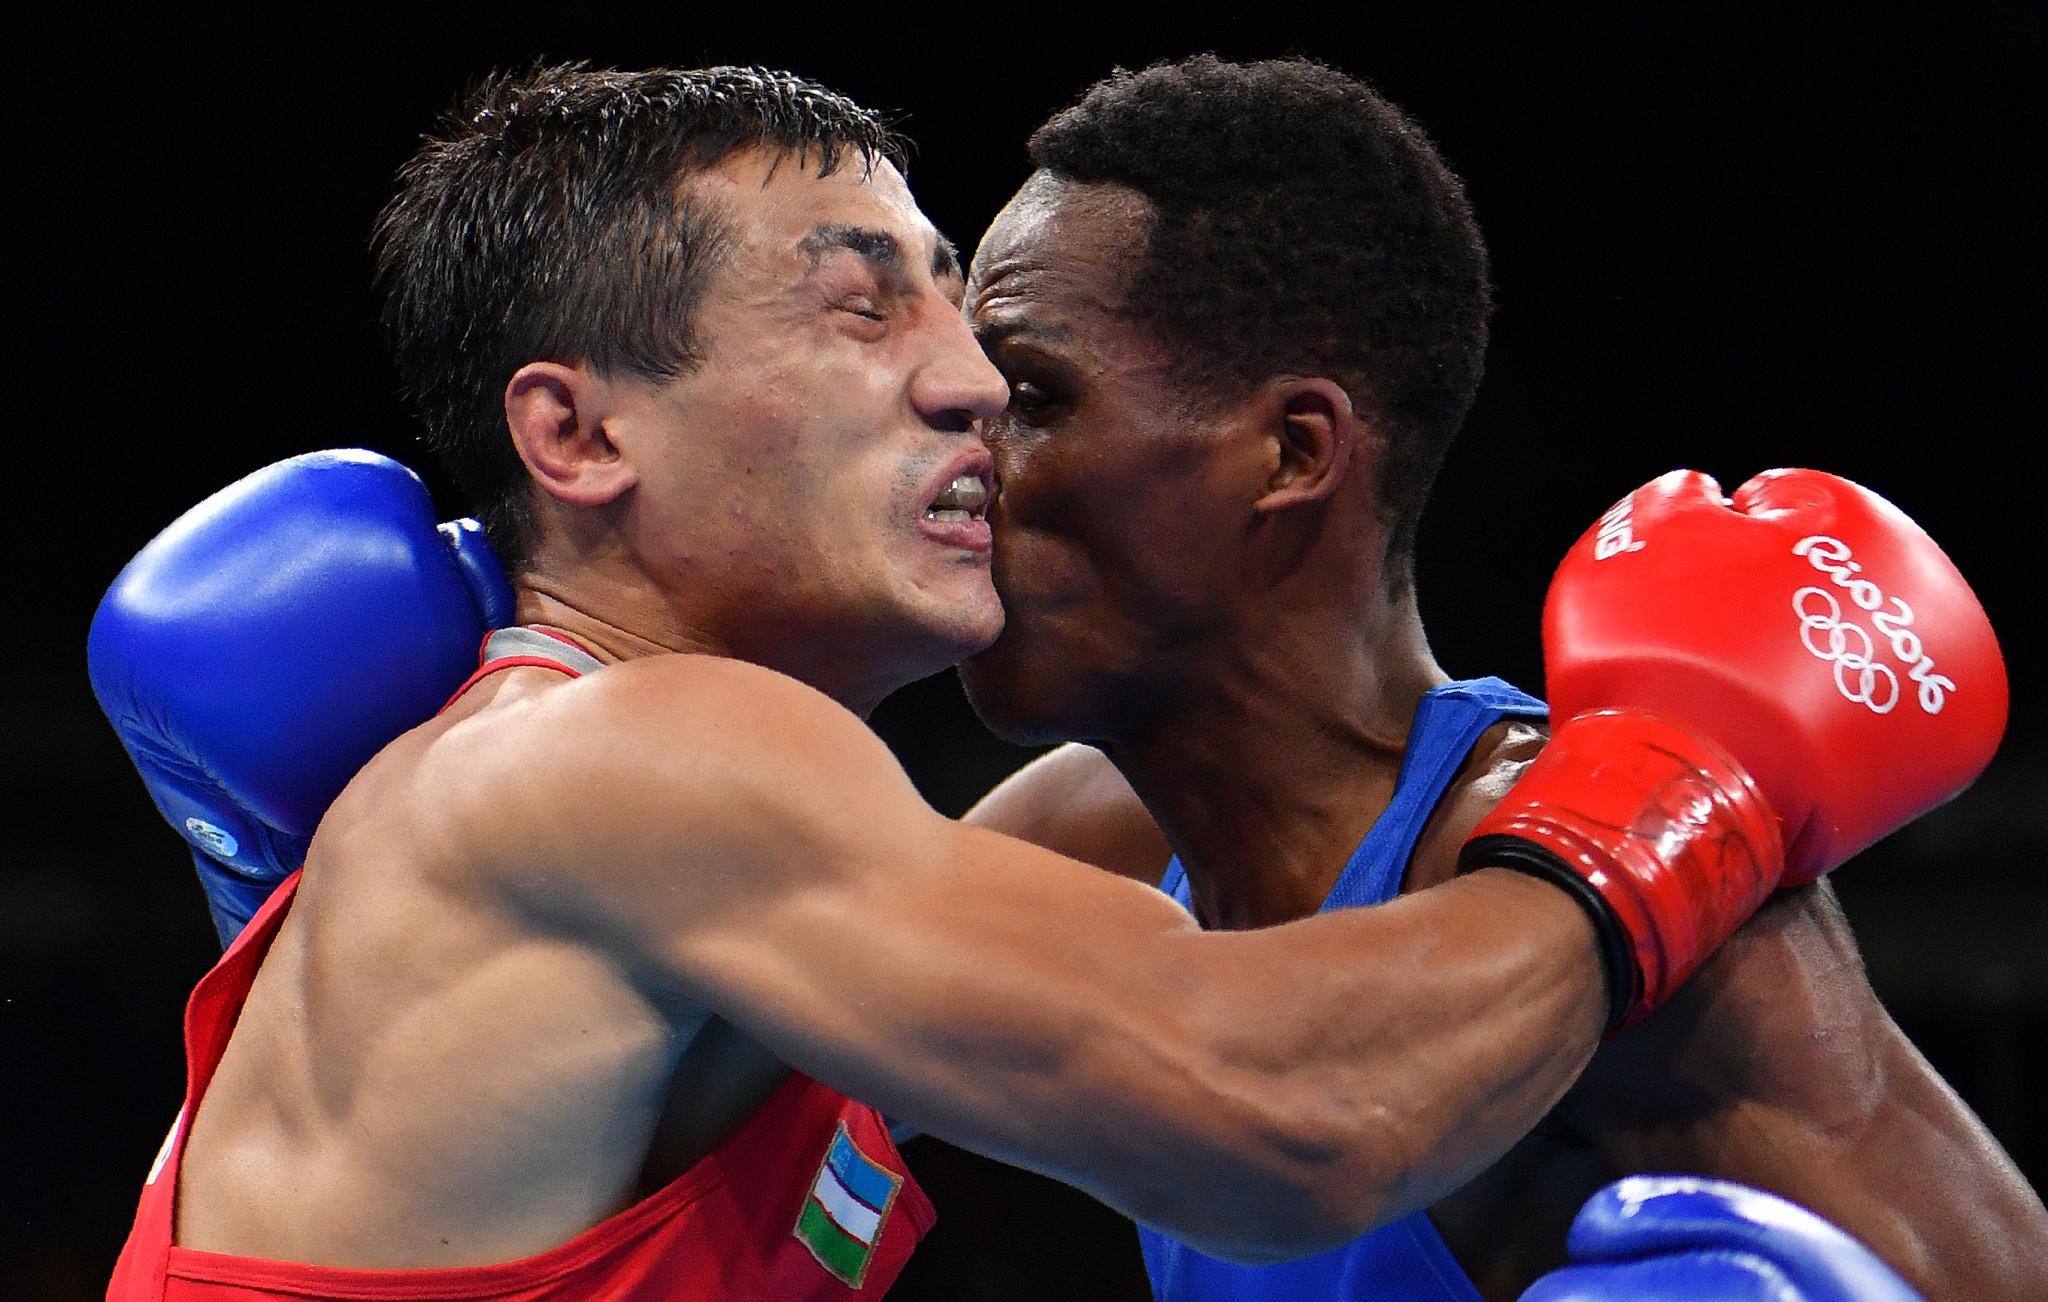 Boxing's Olympic future is now at risk ©Getty Images